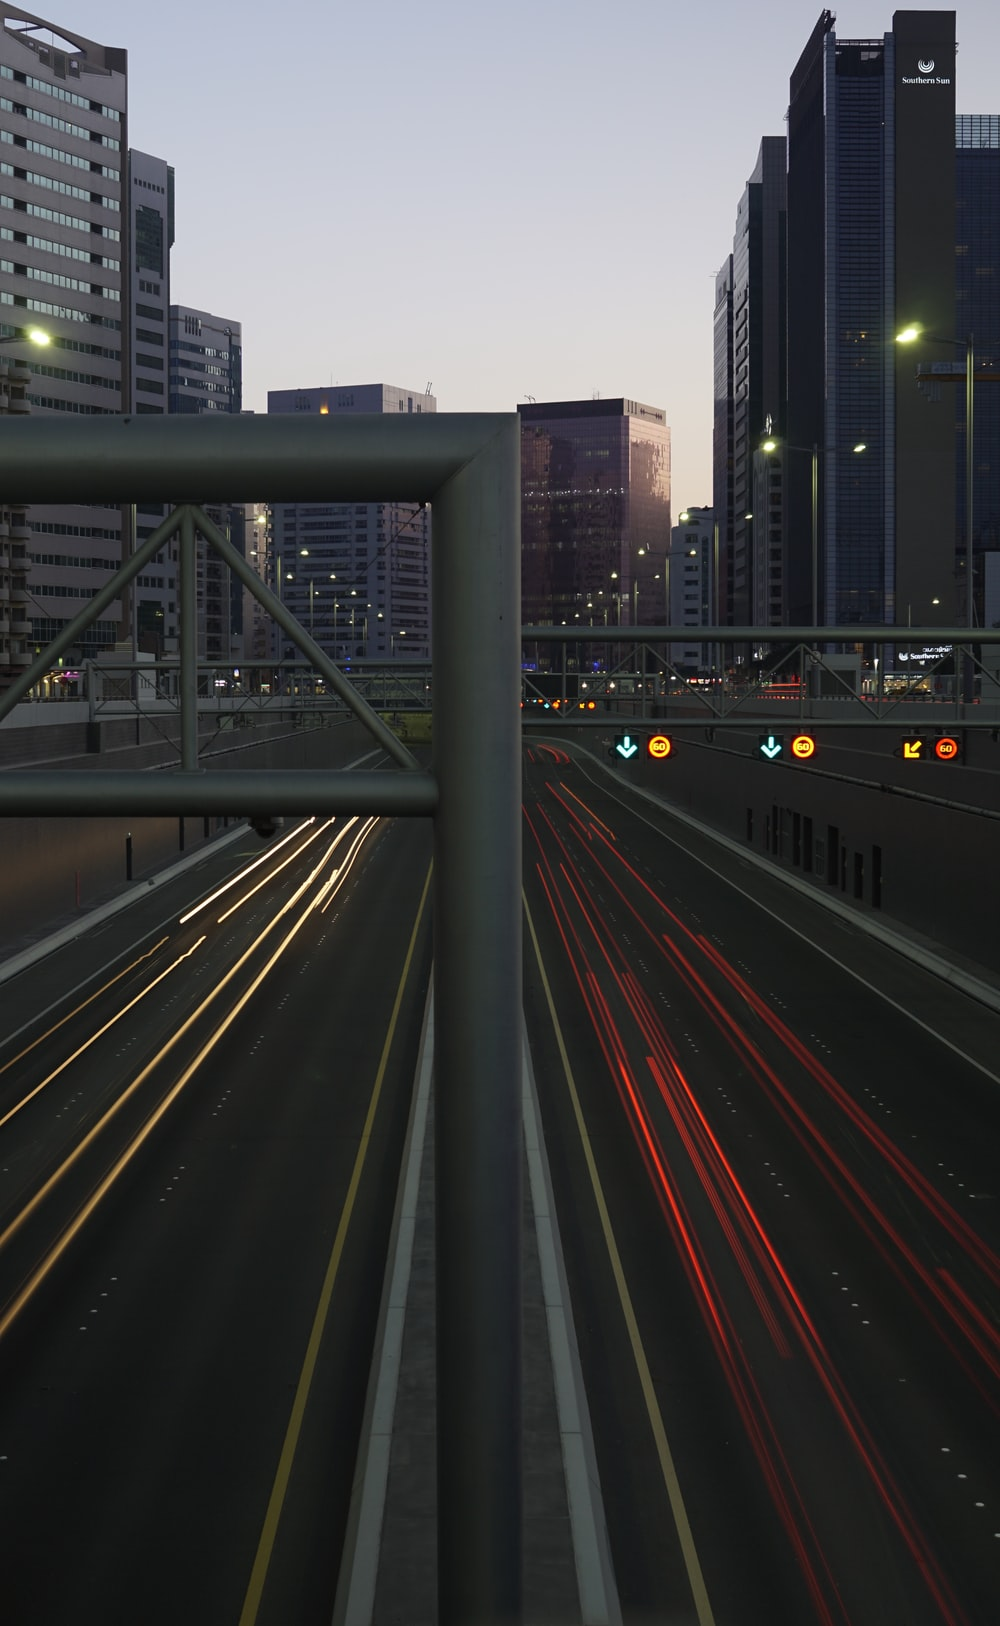 timelapse photography of road between buildings